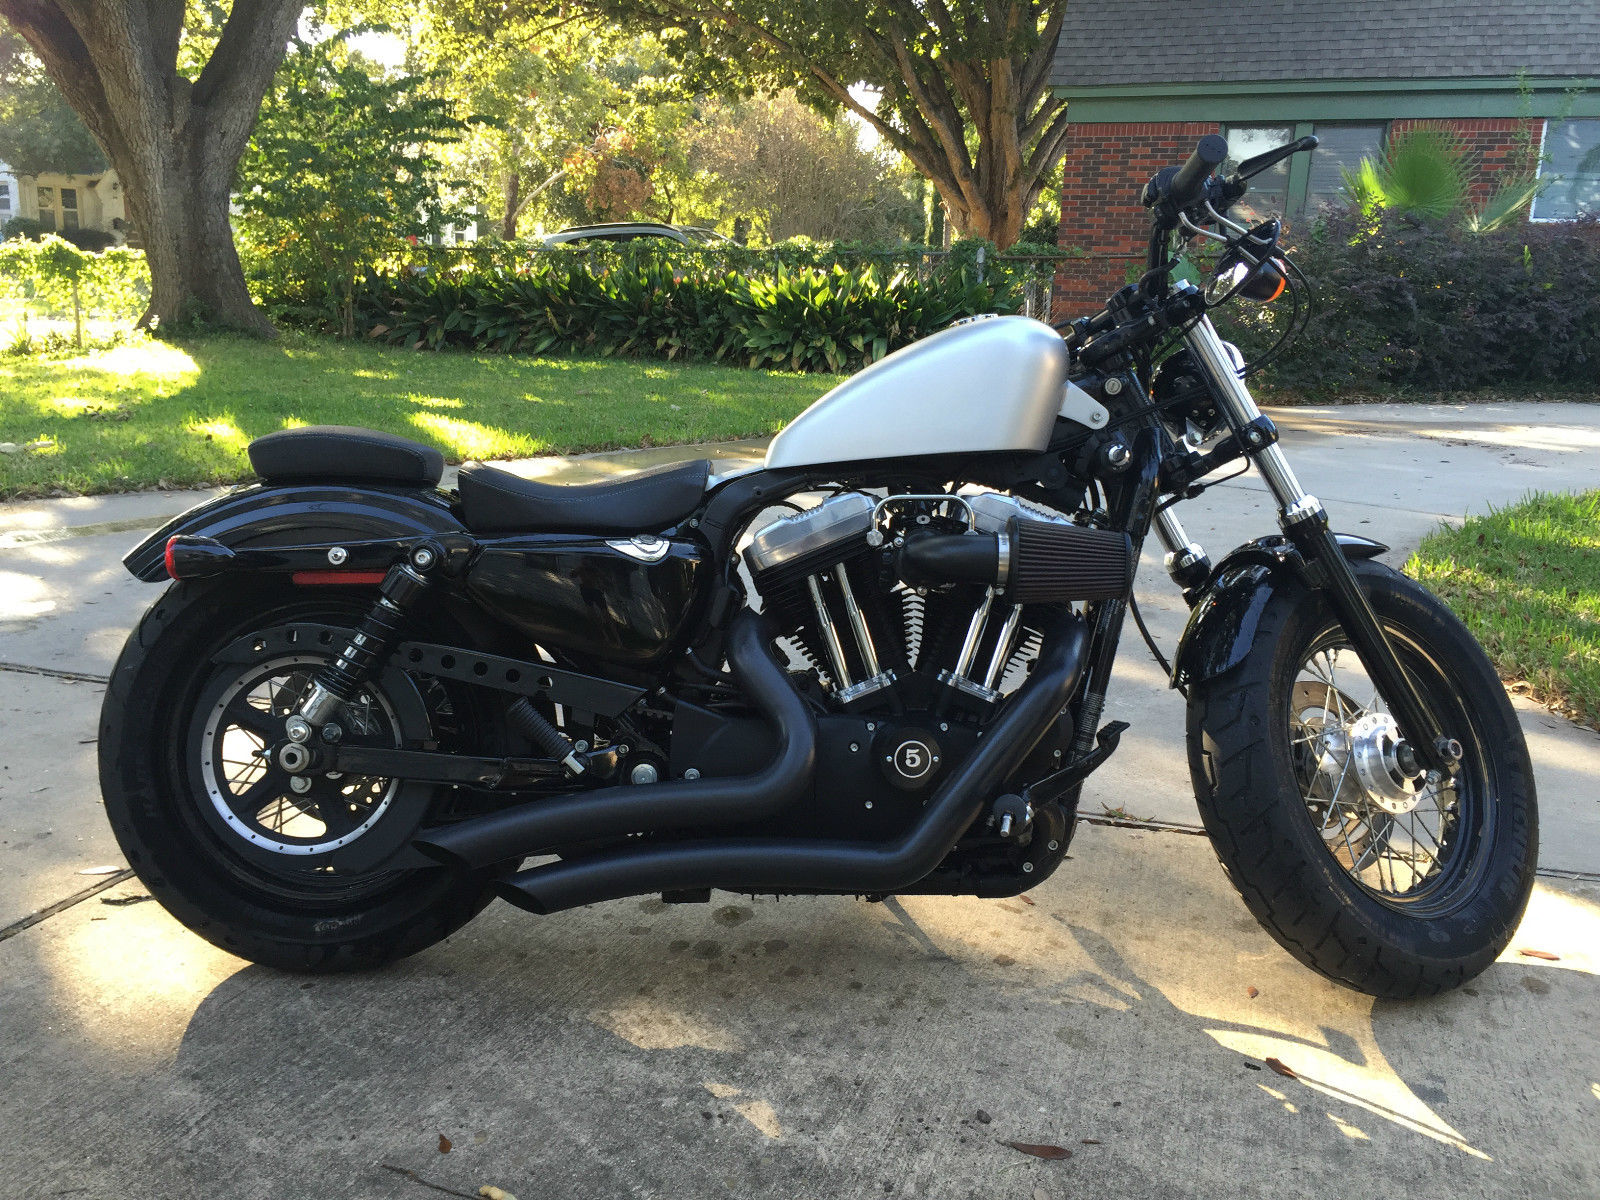 2011 harley davidson forty eight sportster 1200 xl 2063 miles only. Black Bedroom Furniture Sets. Home Design Ideas